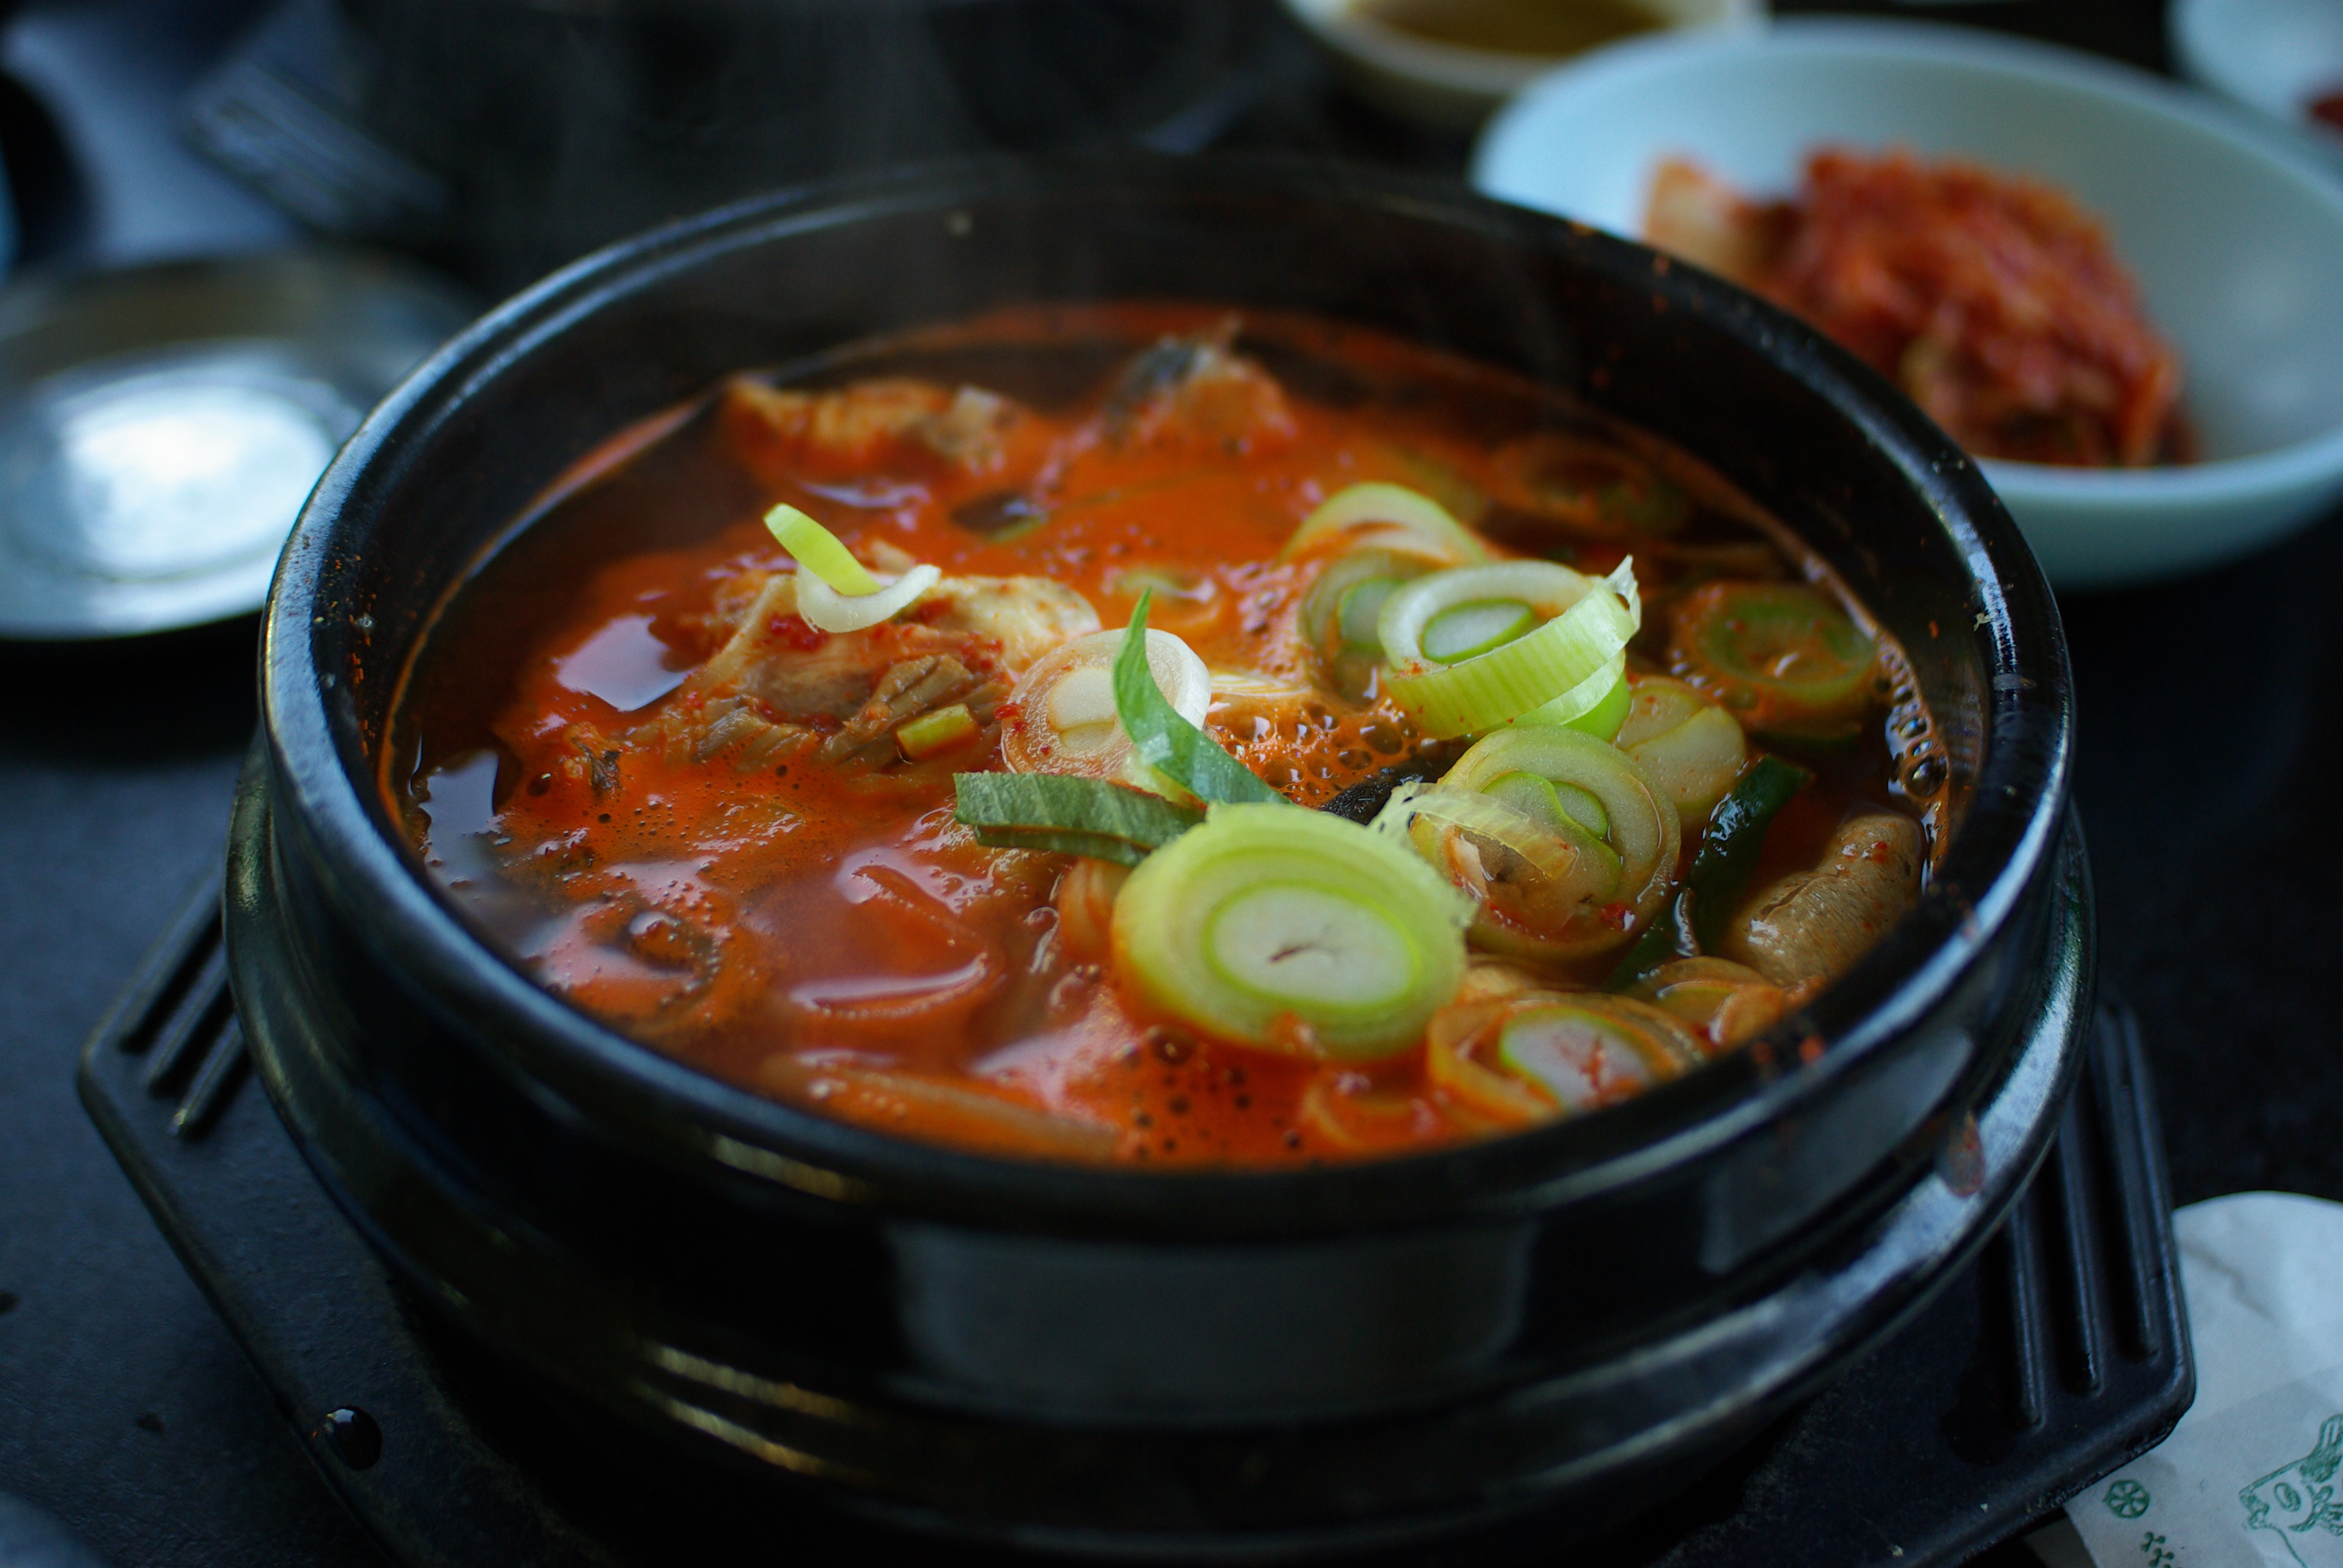 Korean bowl of soup